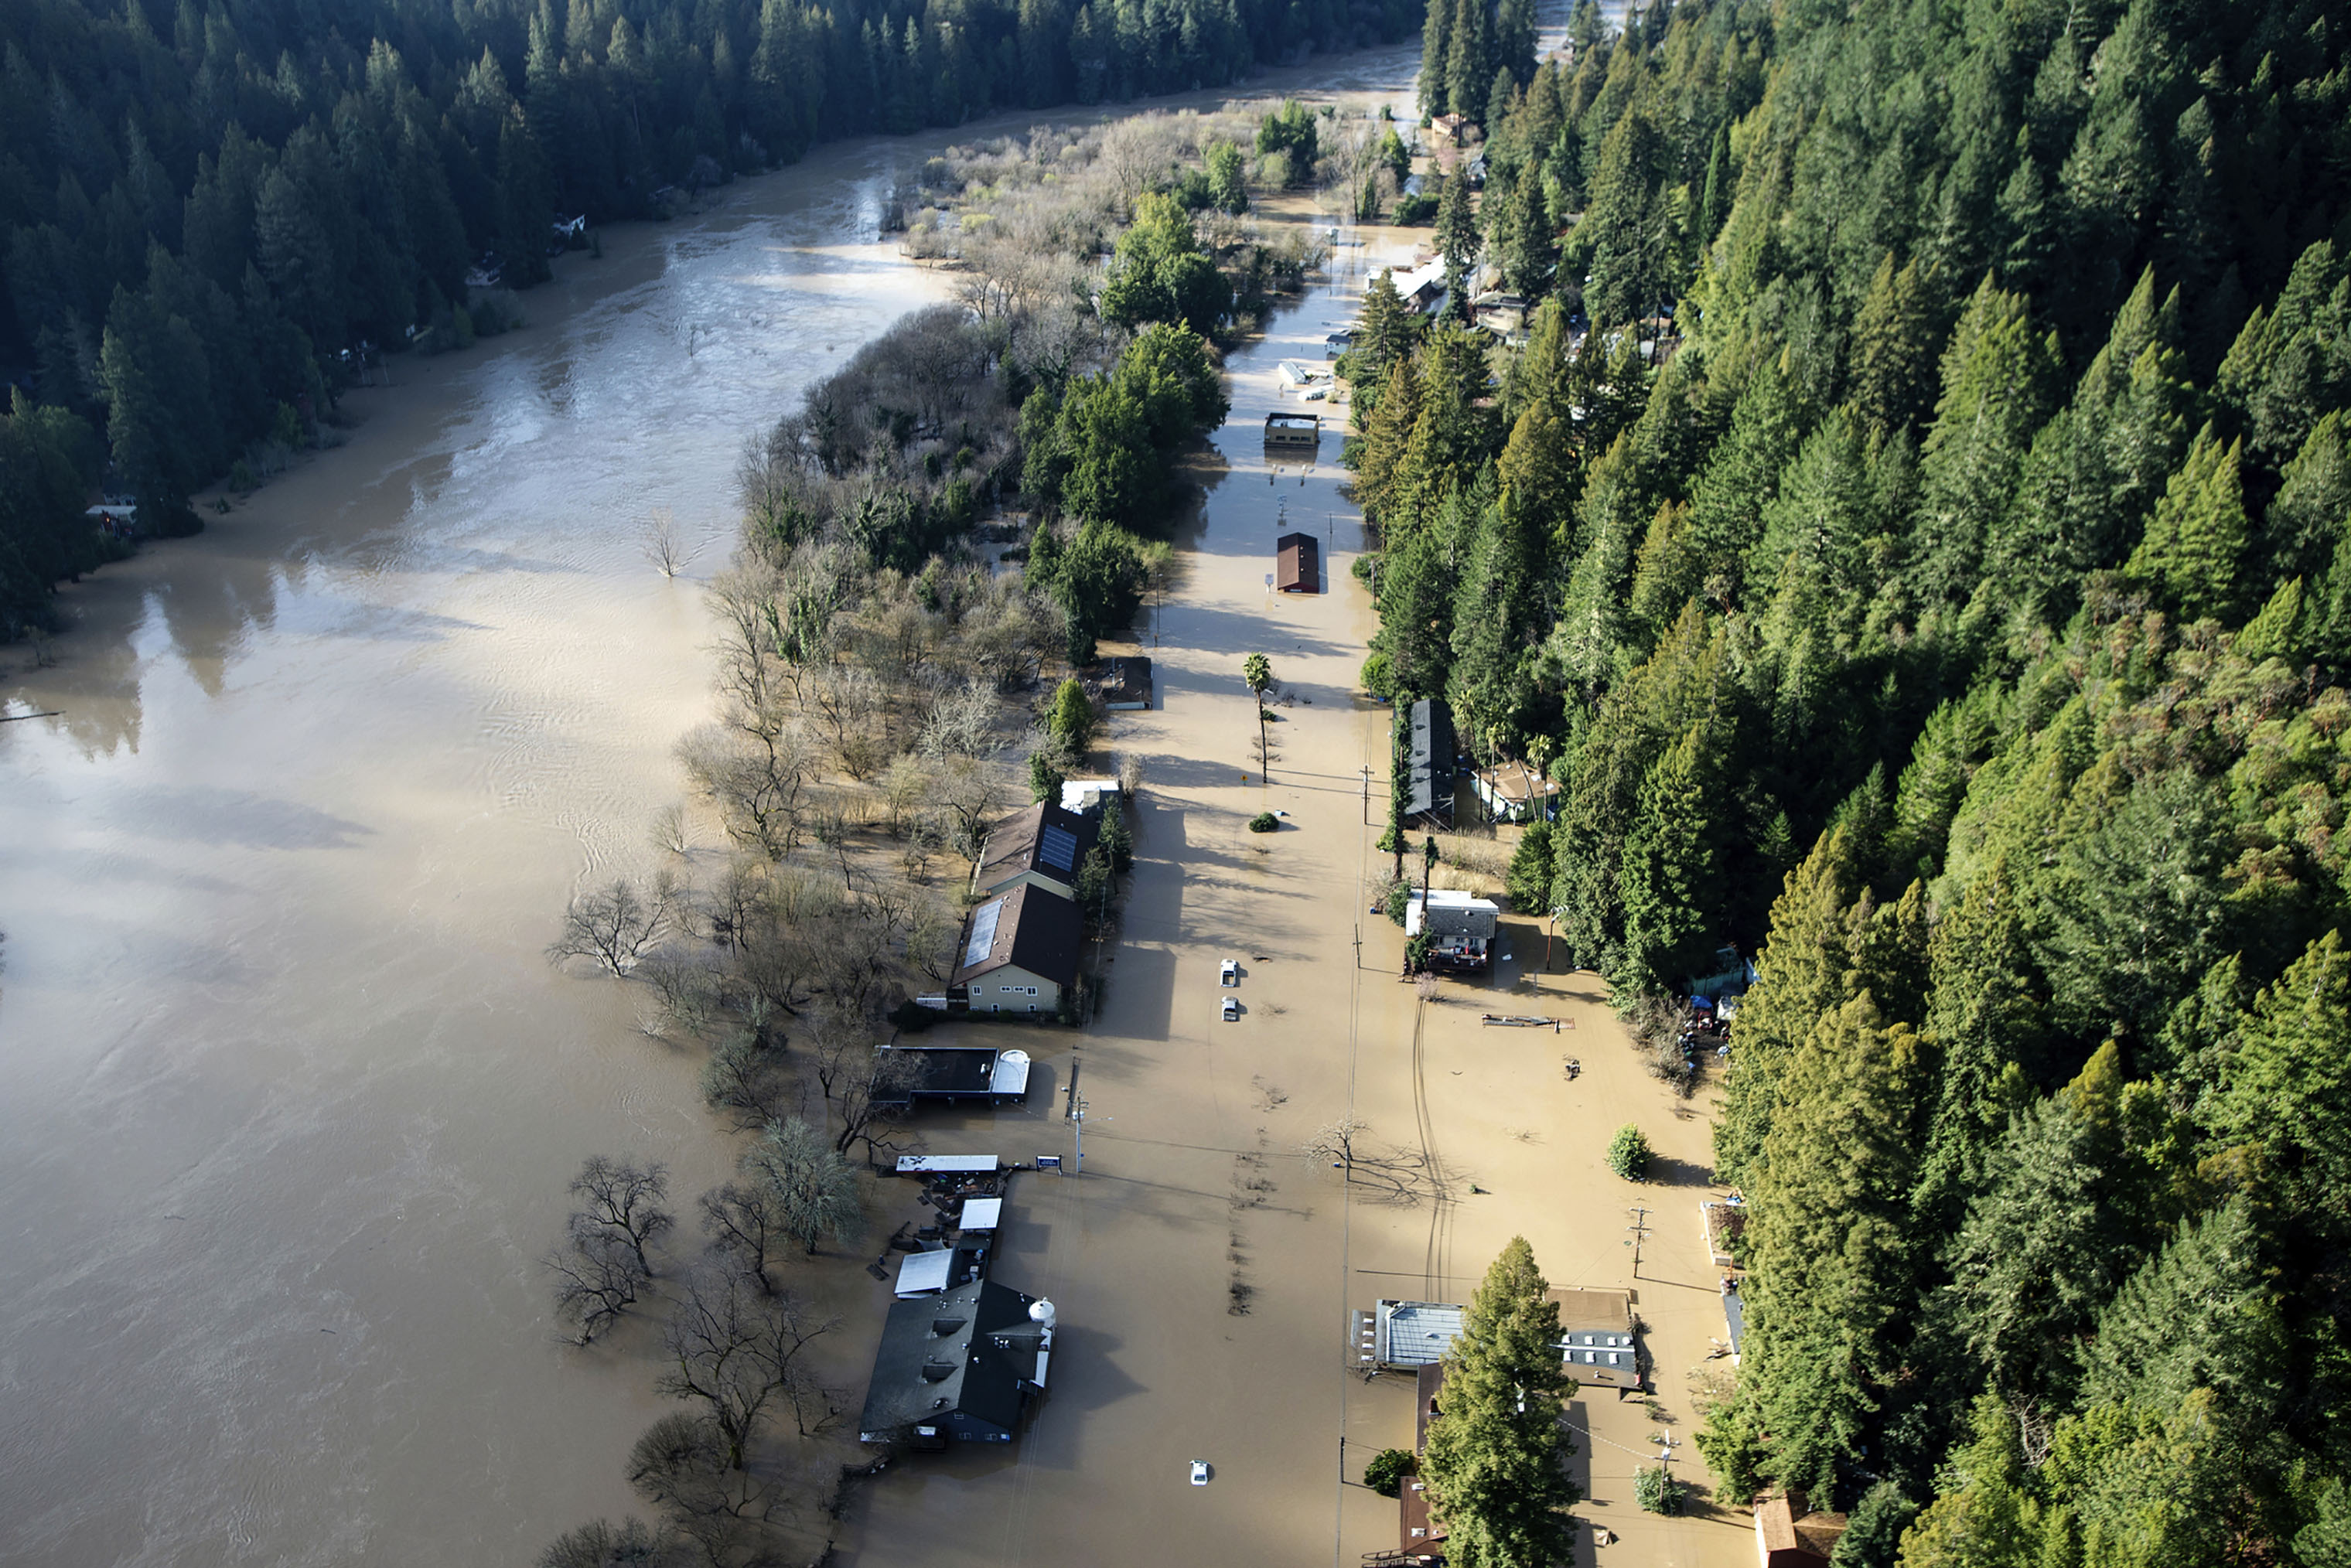 Flood waters from the Russian River partially submerge properties in Guerneville, Calif., on Feb. 28, 2019. The river in the wine country north of San Francisco reached its highest level in 25 years Wednesday night.